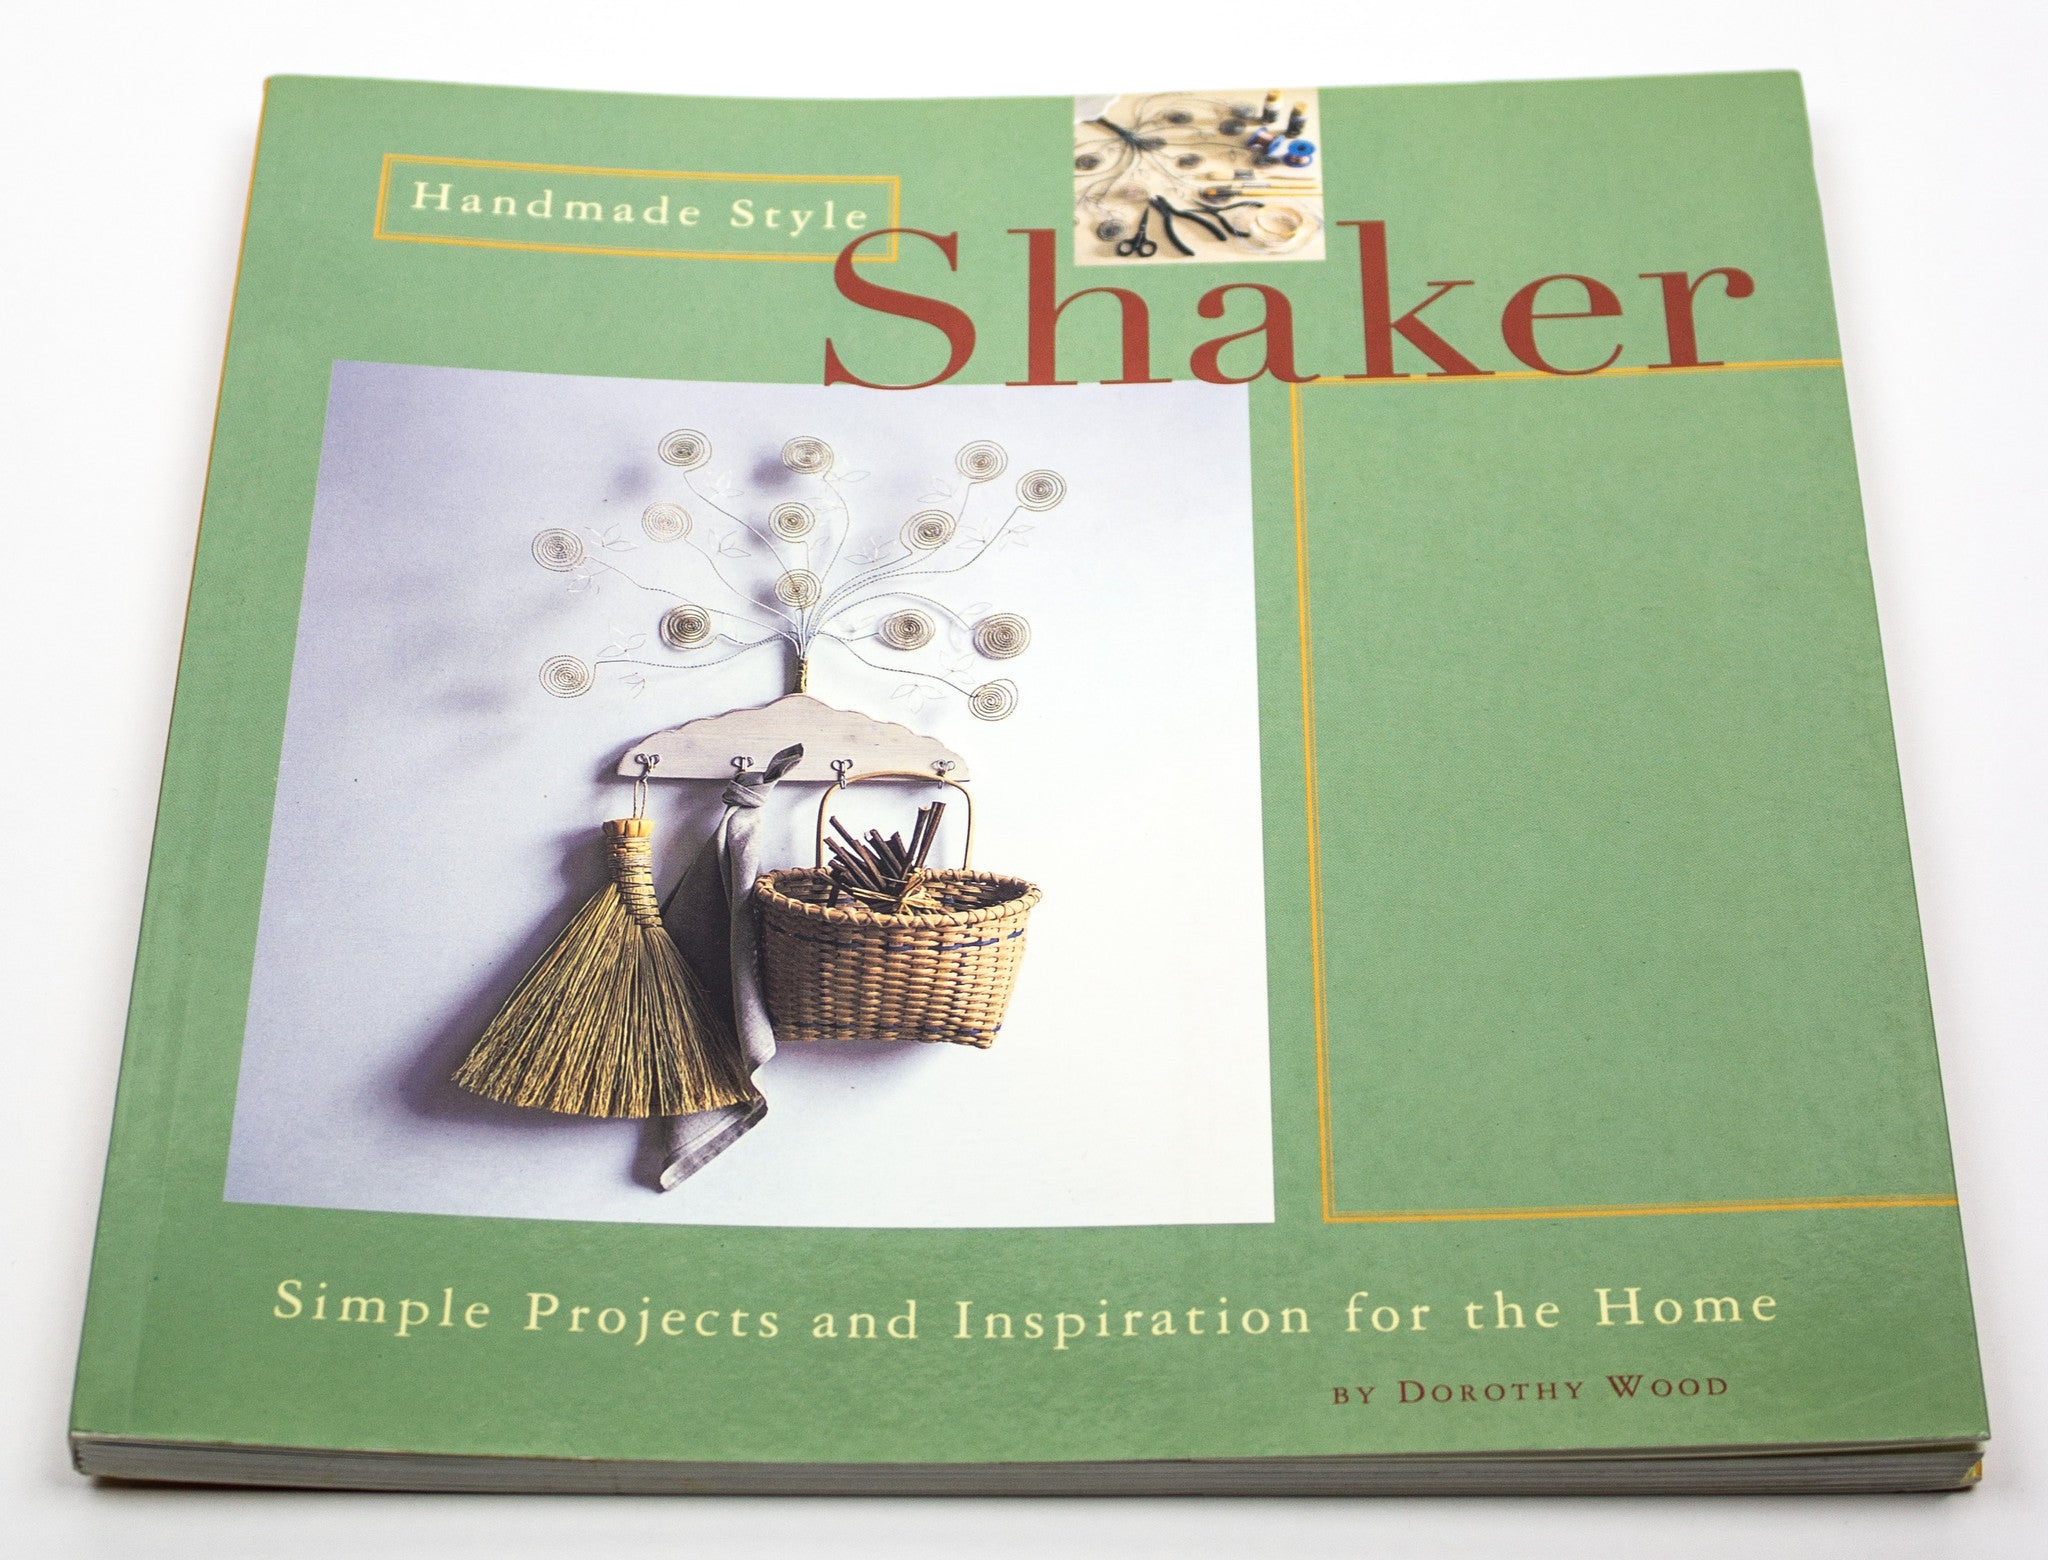 Handmade Style: Shaker - Simple Projects and Inspiration for the Home